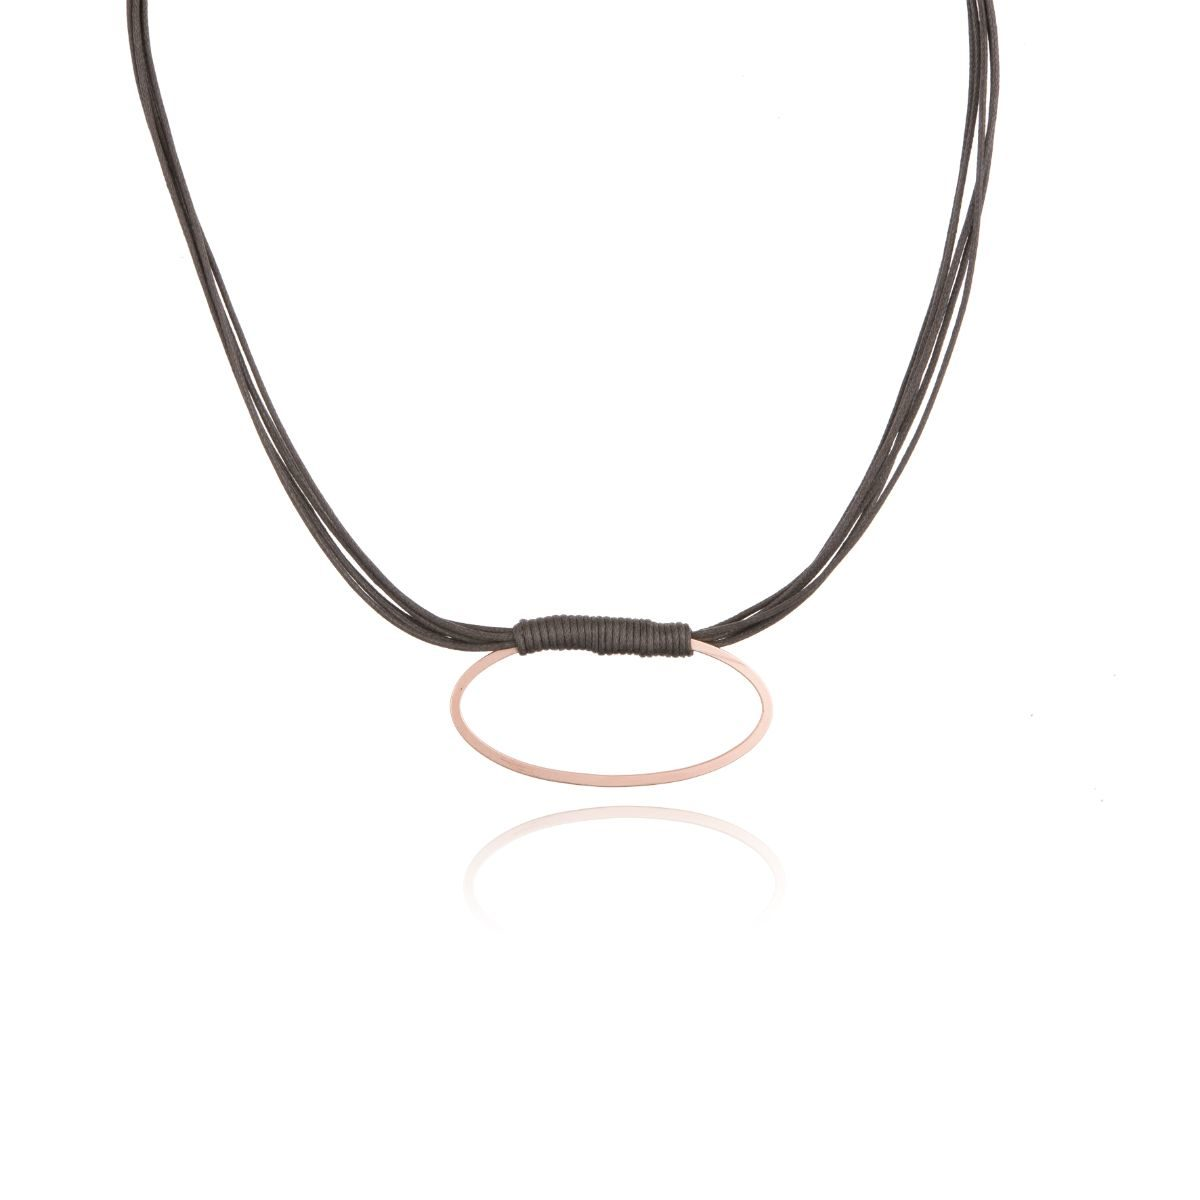 Velodrome short waxed cotton necklace with fine matt gold-plated metallic oval